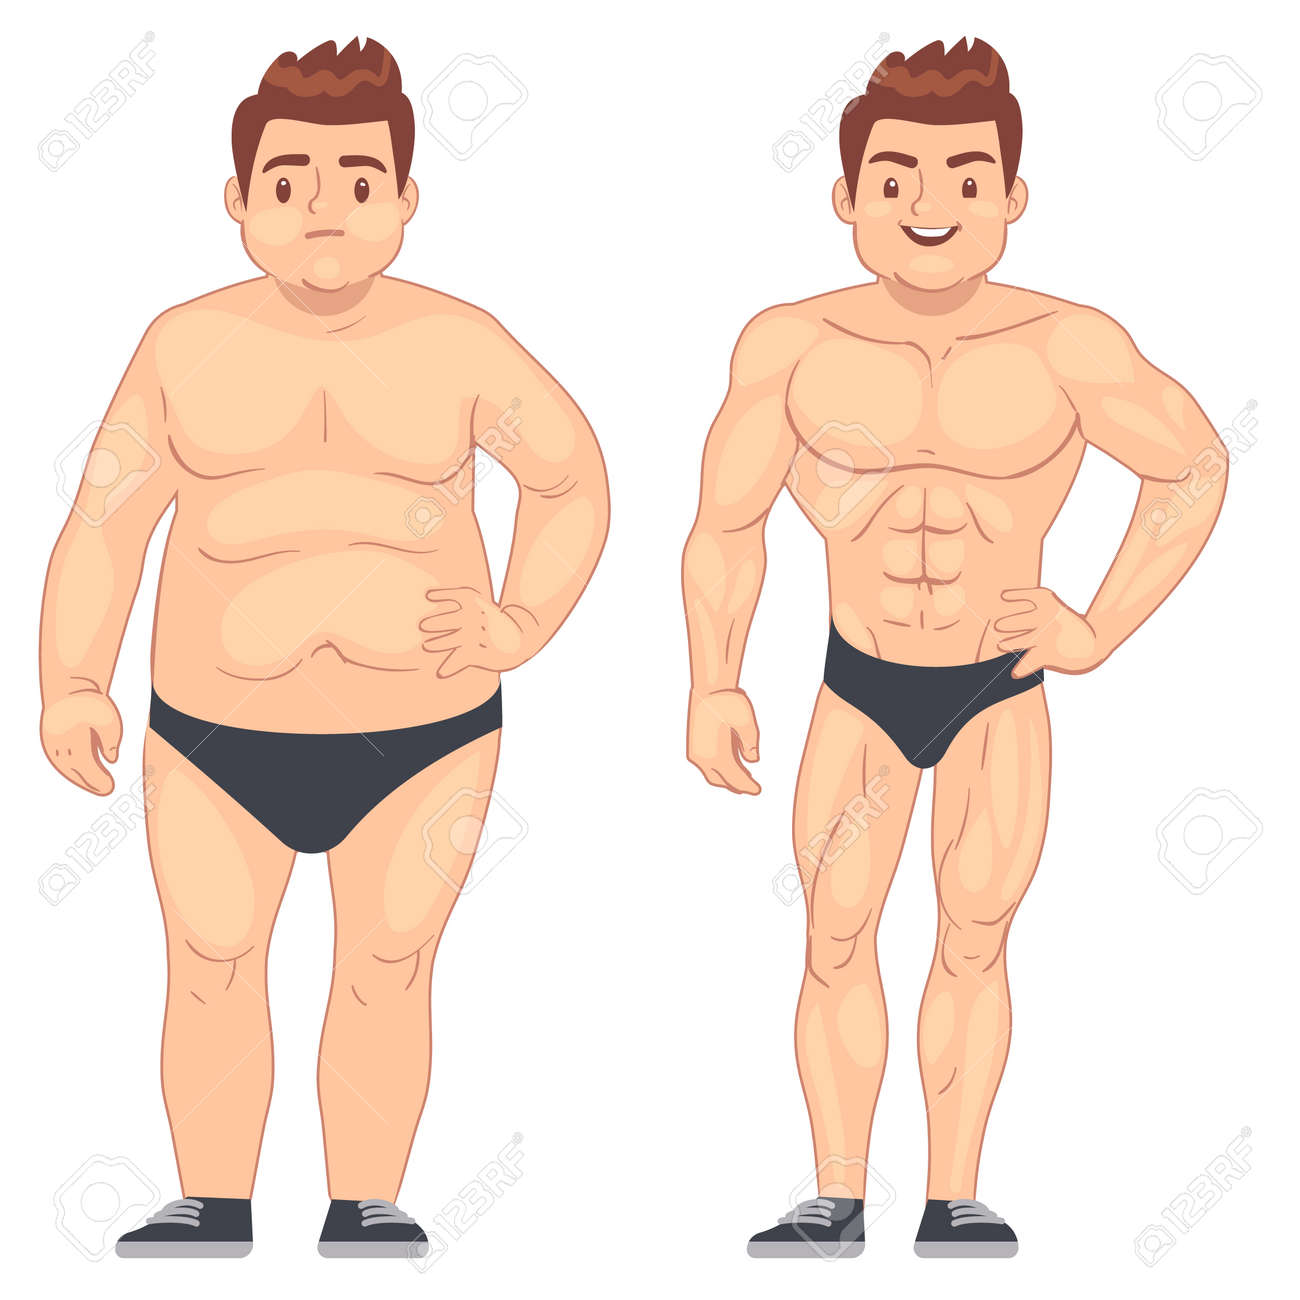 Cartoon muscular and fat man, guy before and after sports. weight loss and diet vector lifestyle concept. Body male muscle and overweight body illustration - 165867107